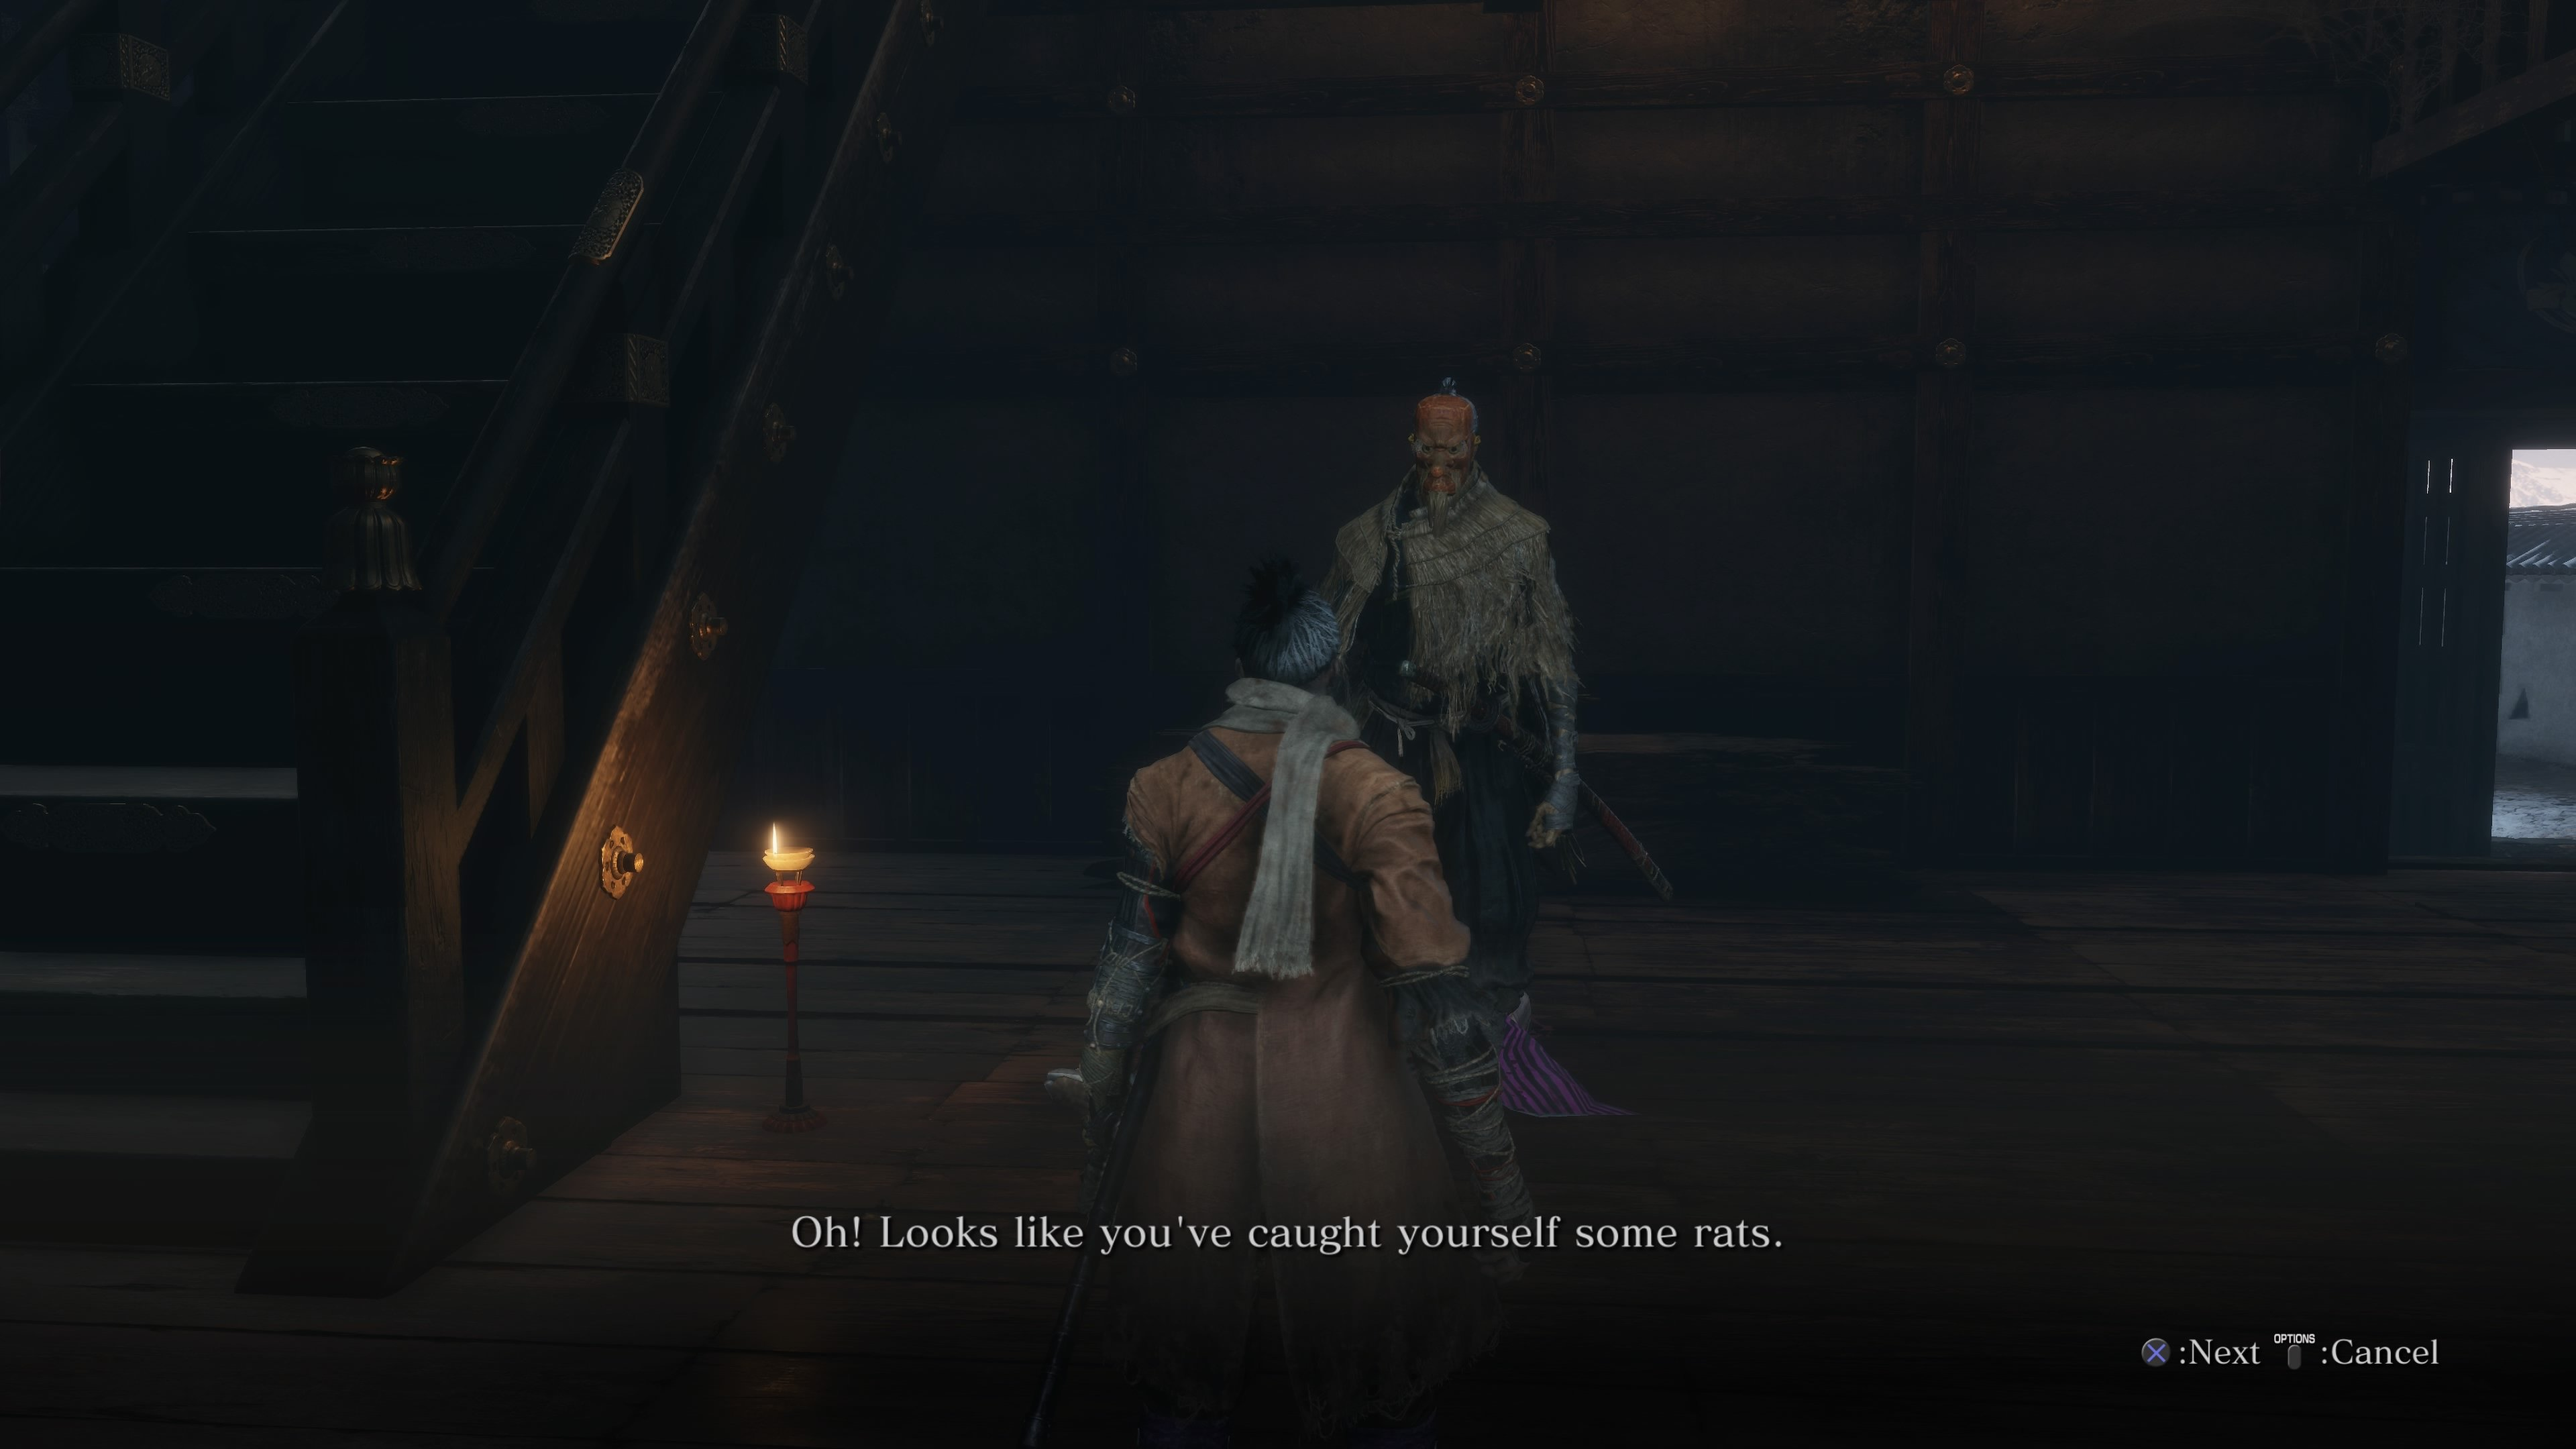 Where to find the Rats in Sekiro: Shadows Die Twice